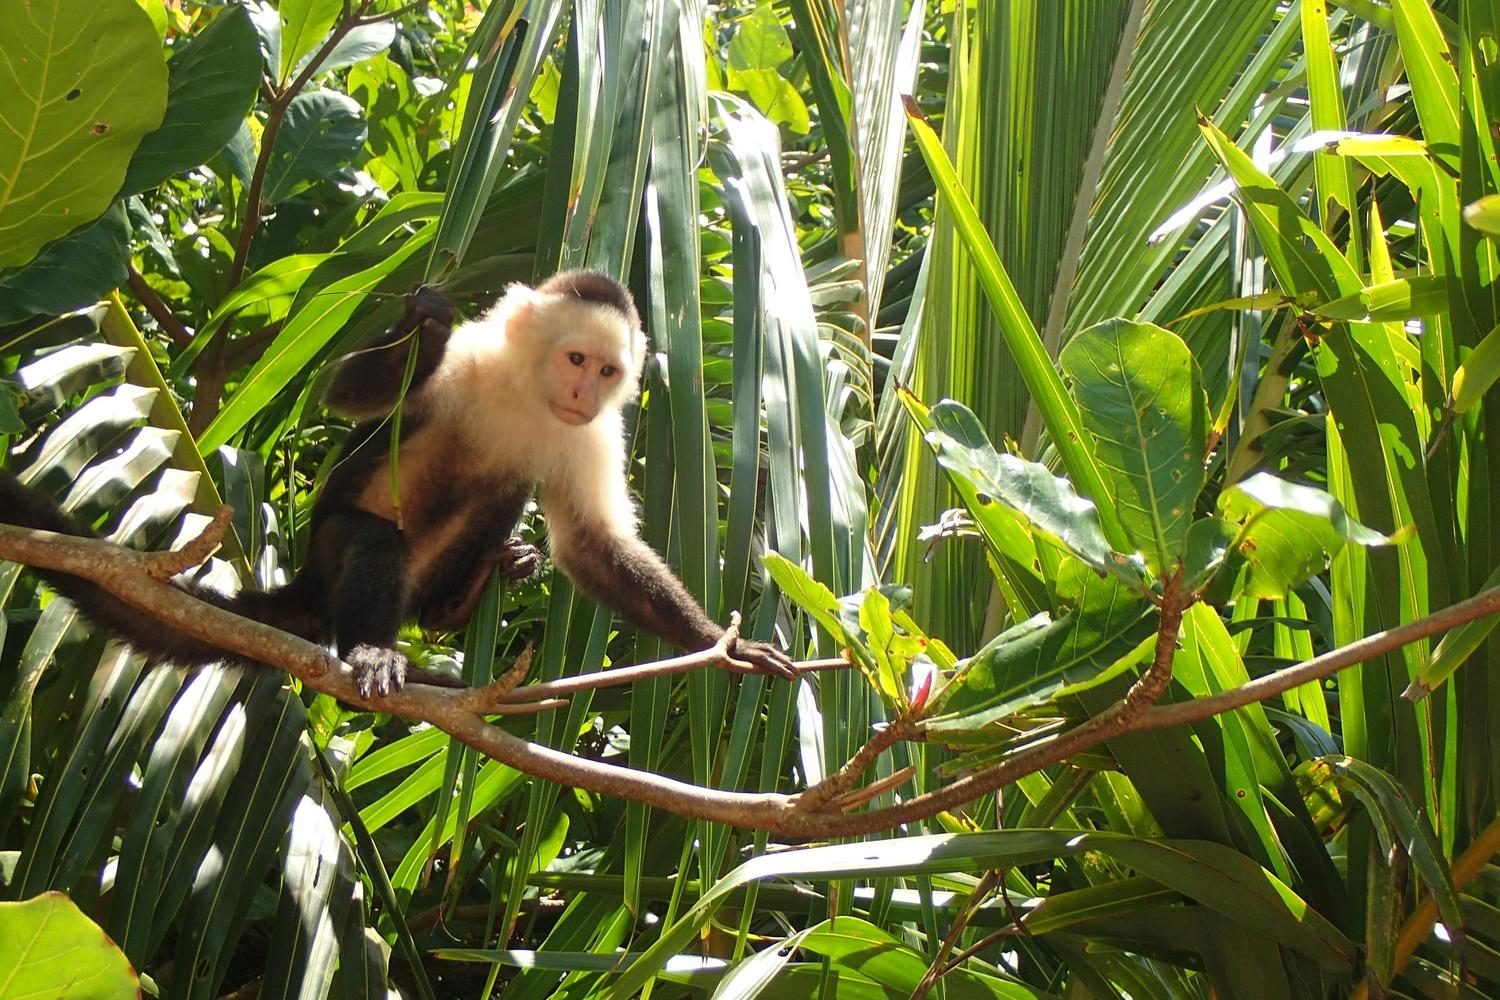 White-faced capuchin monkey sits in the sun